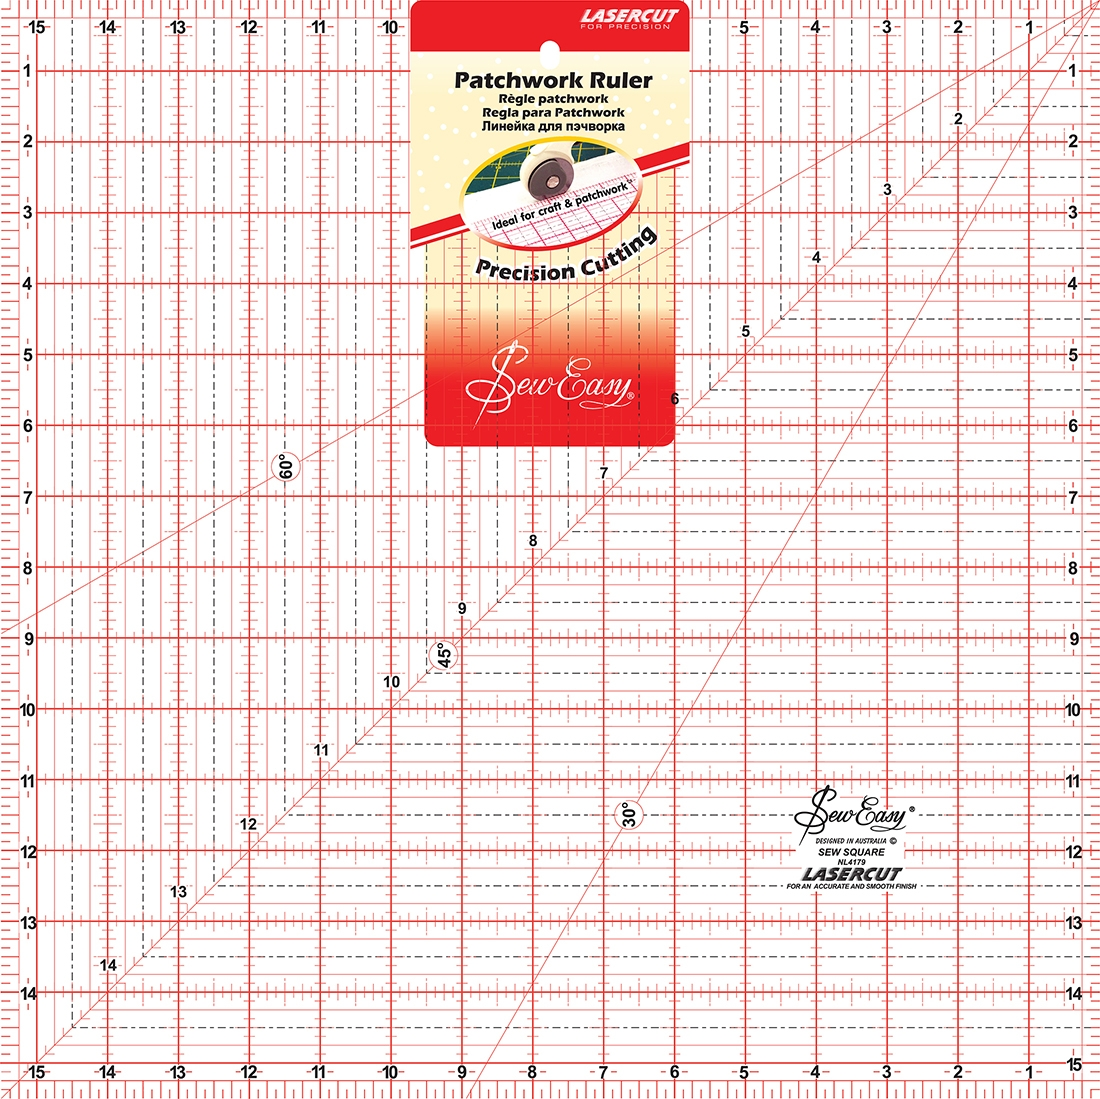 Square 15.5 x 15.5 Sew Easy Quilt Ruler